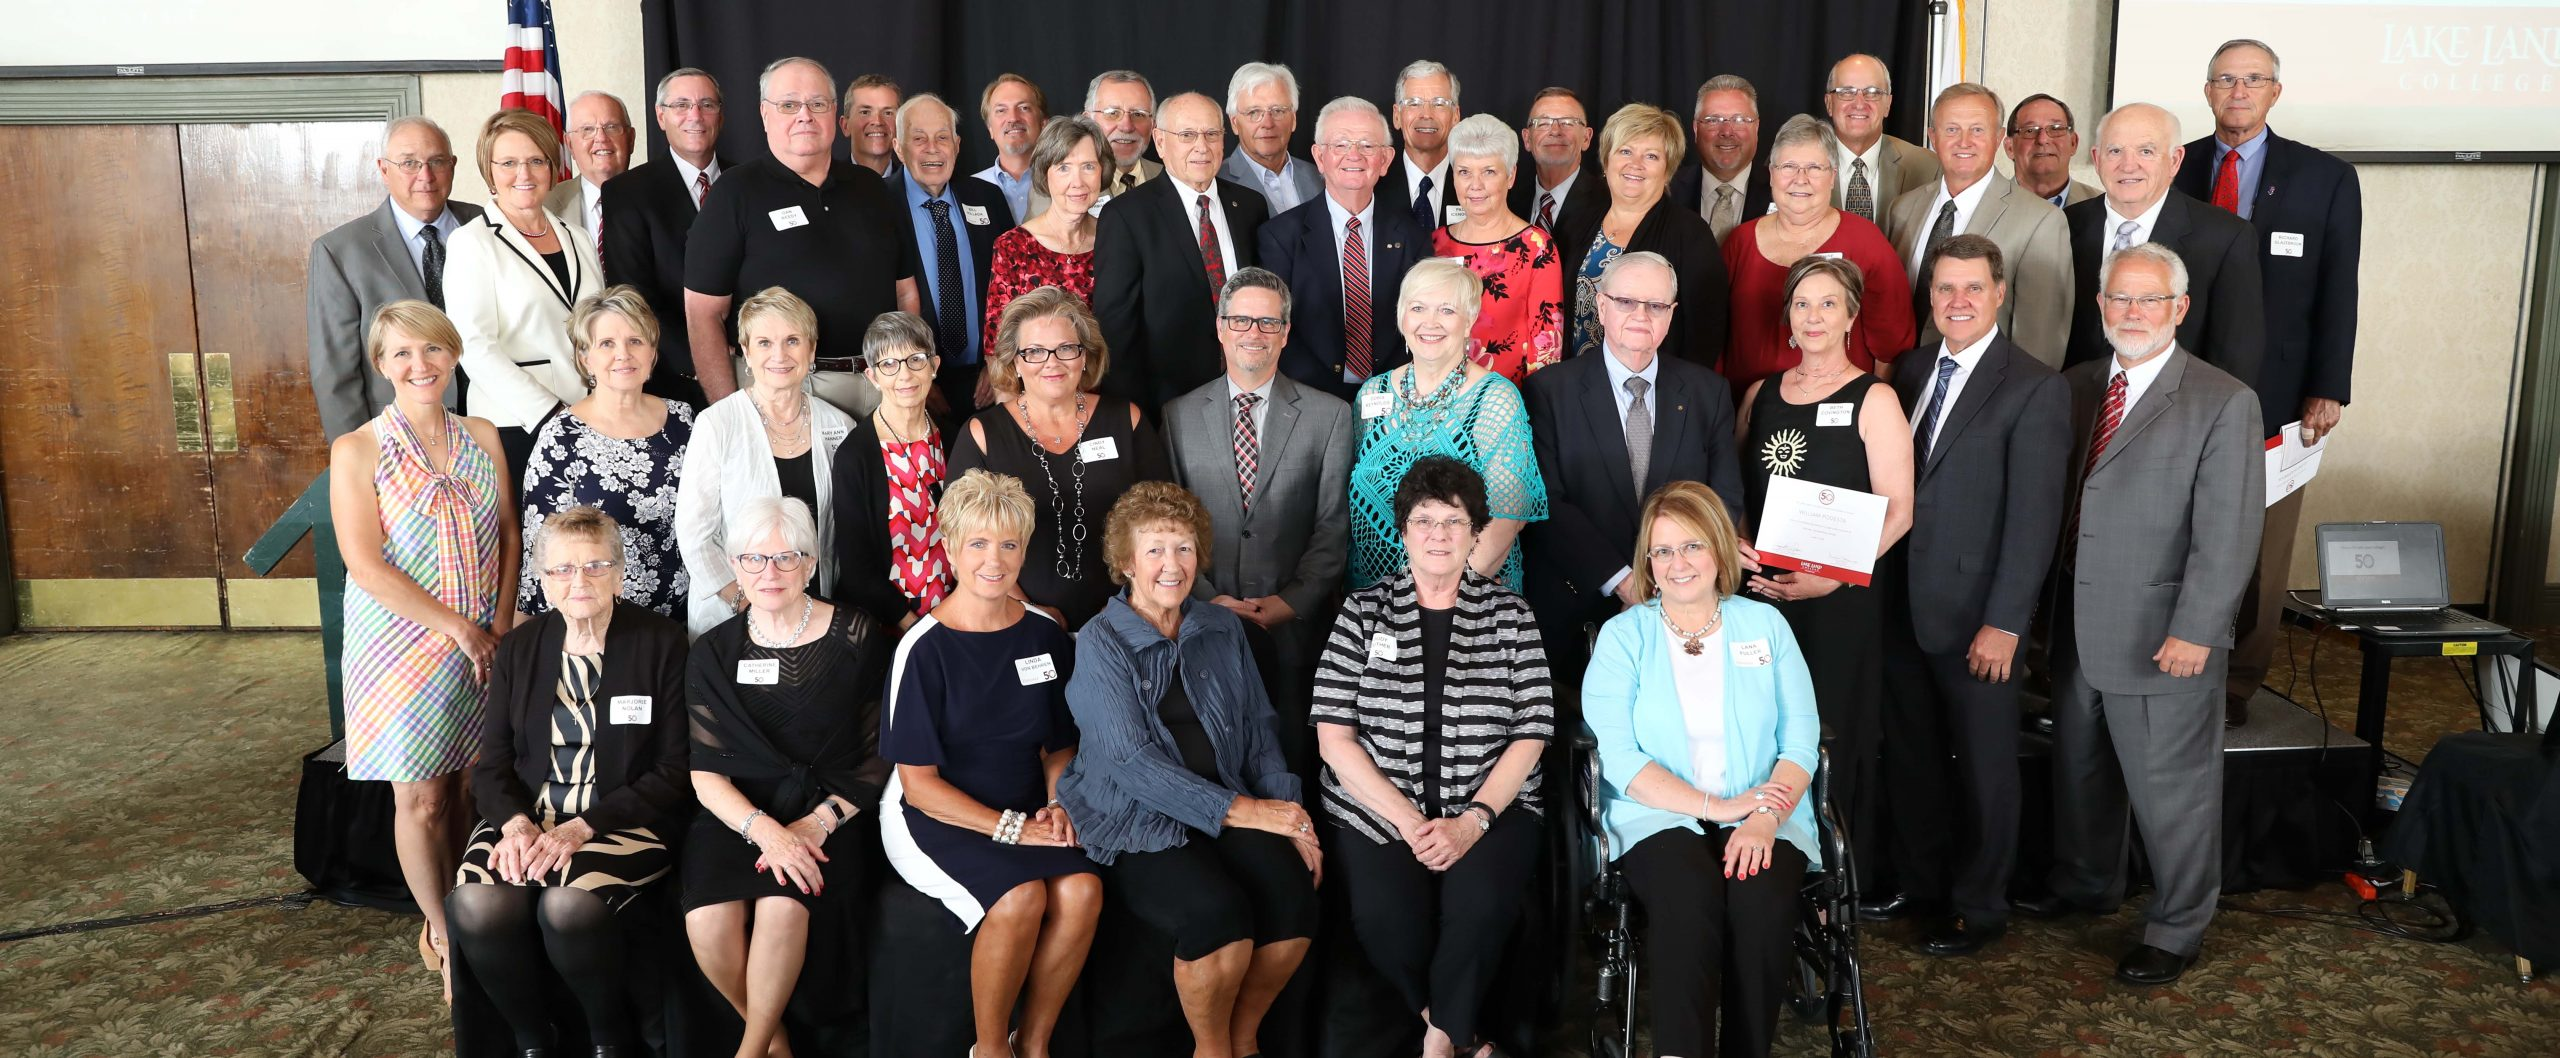 Lake Land College Foundation Honors Top 50 VIPs at celebration